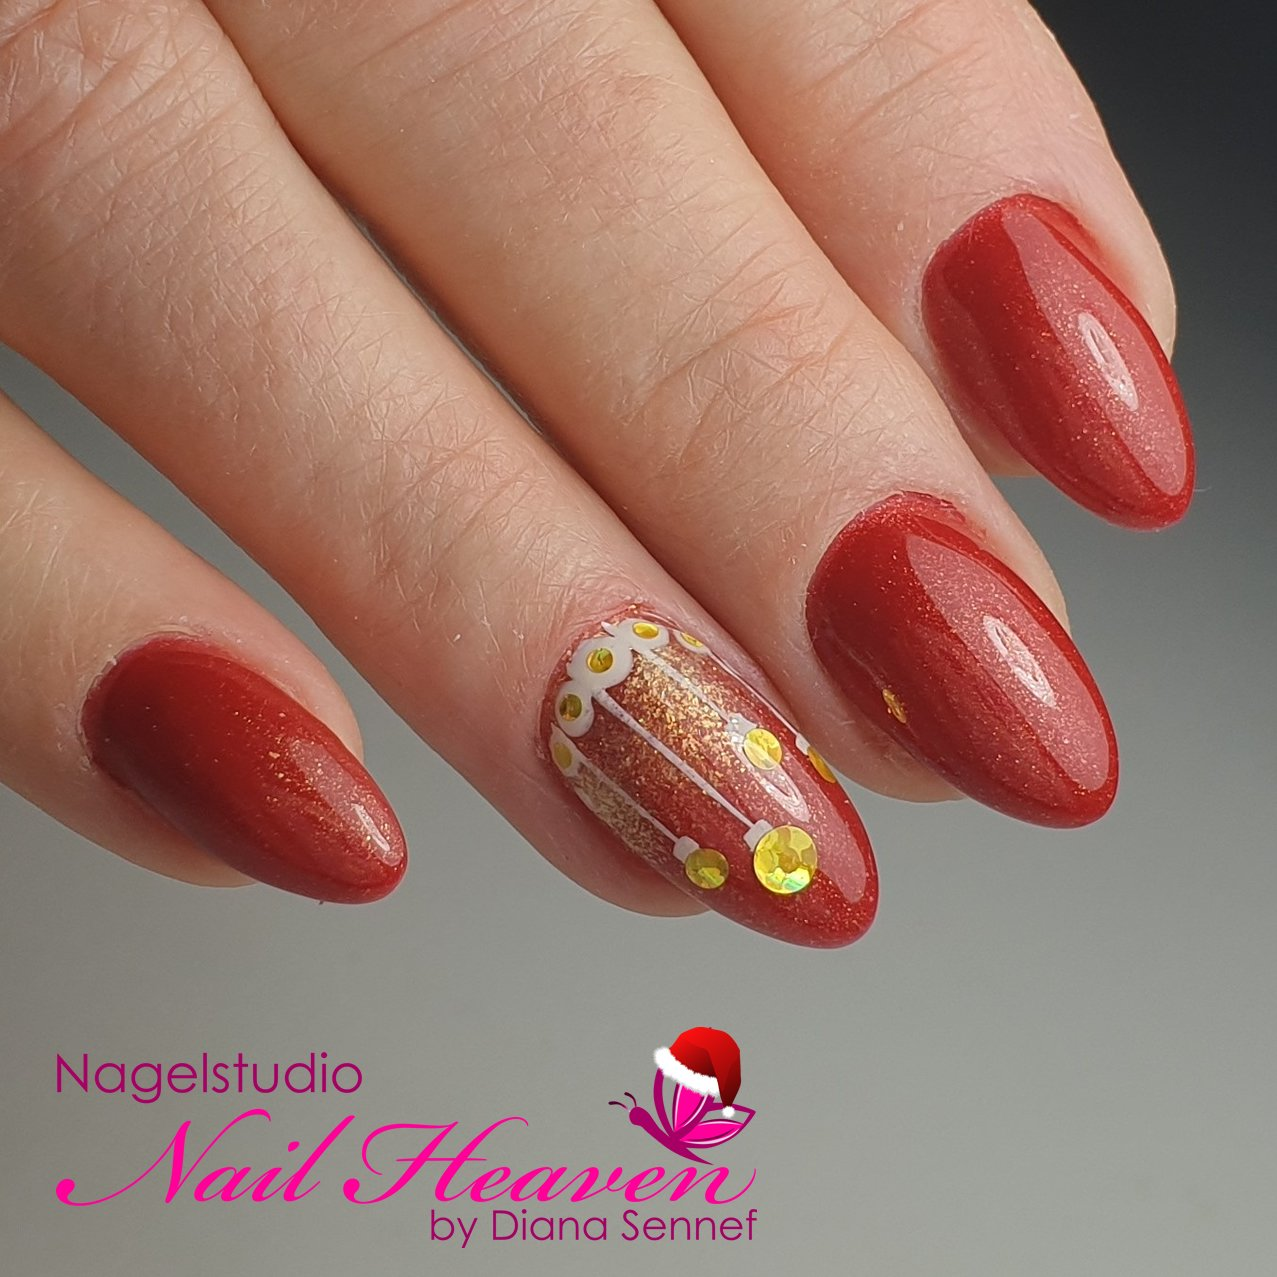 20191224_Betty_acryl_gelpolish_nailart_121452~01-logo